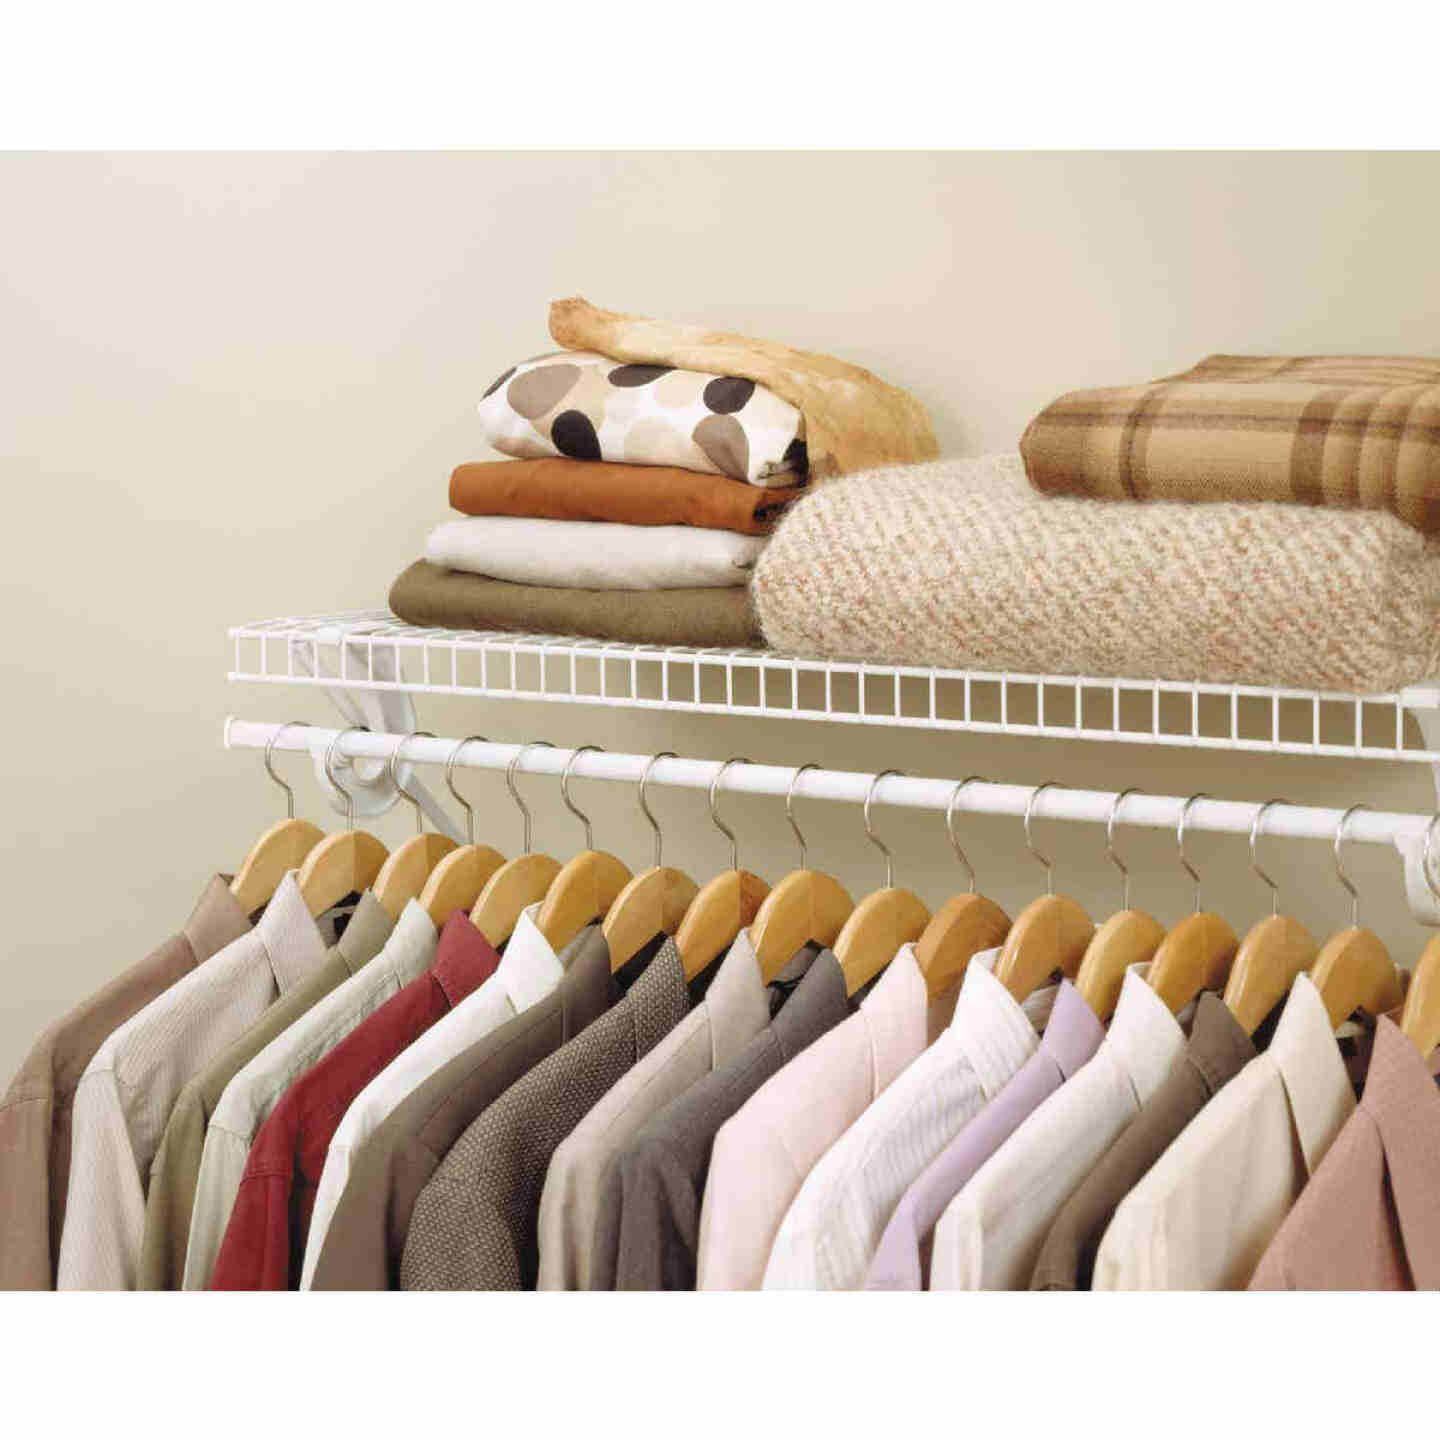 ClosetMaid SuperSlide 6 Ft. W. x 12 In. D. Ventilated Shelf Kit with Bar Image 2